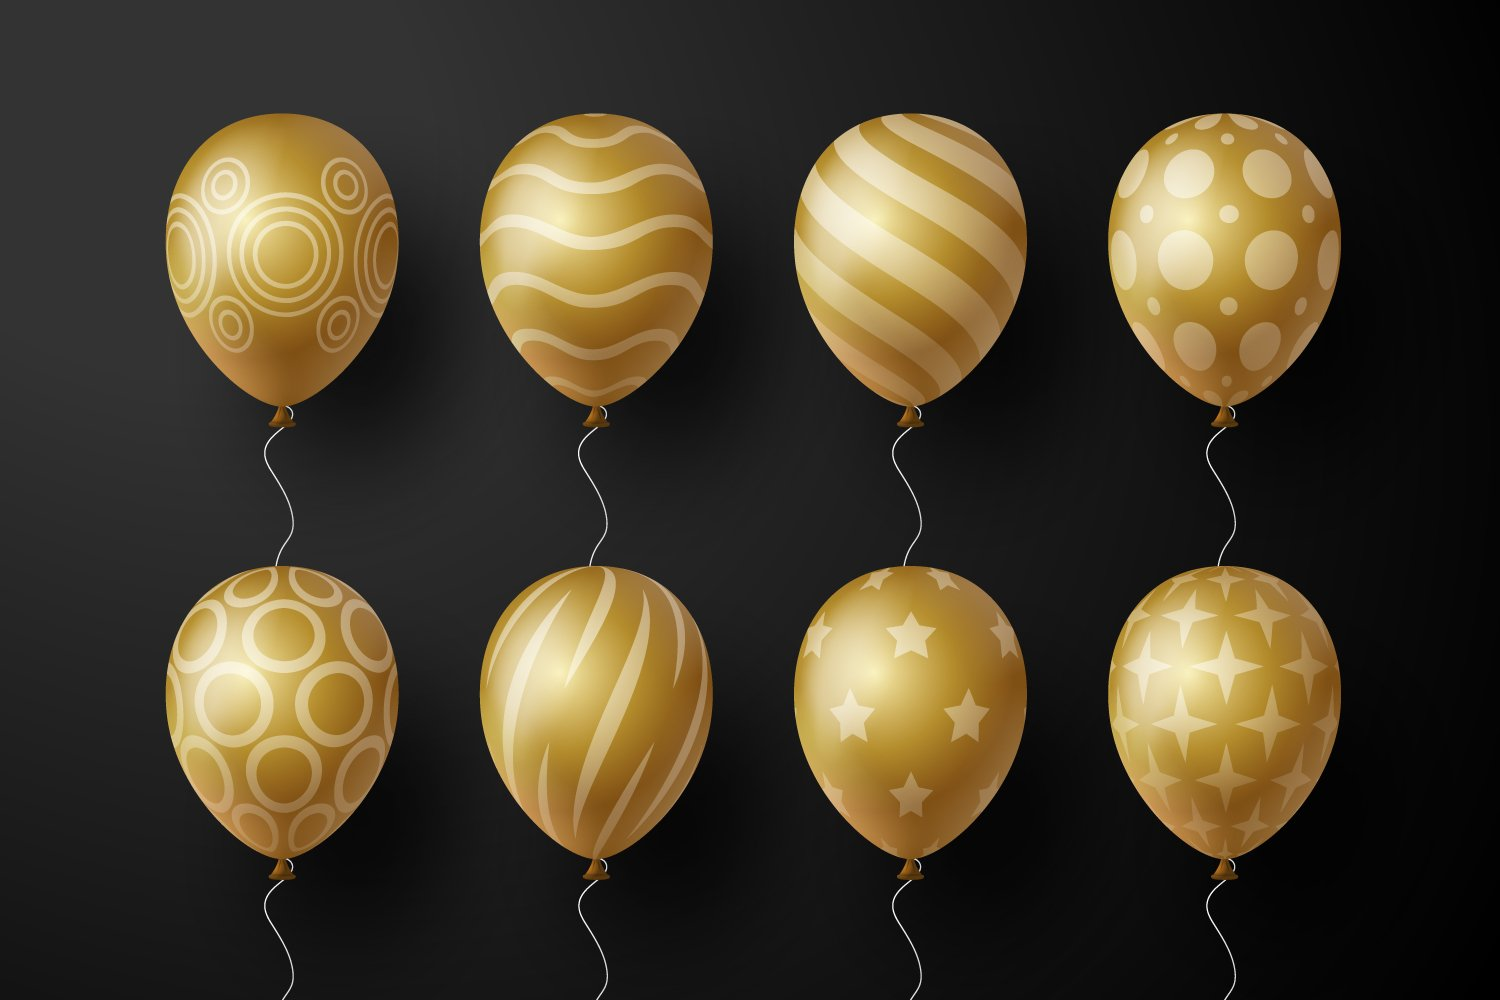 Luxury balls in gold color with various geometric shapes.